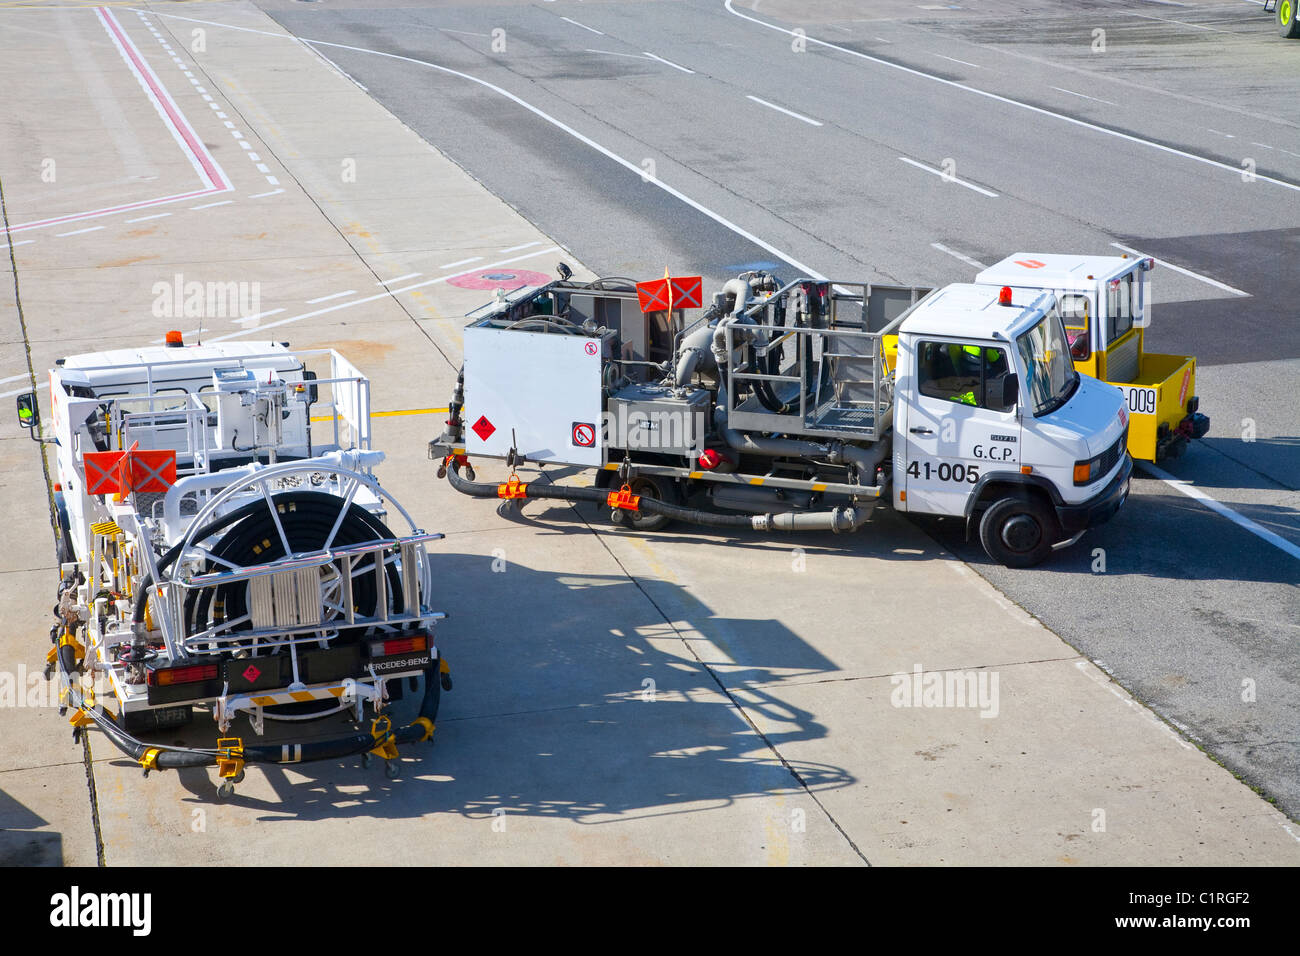 Refueling vehicles at an airport - Stock Image